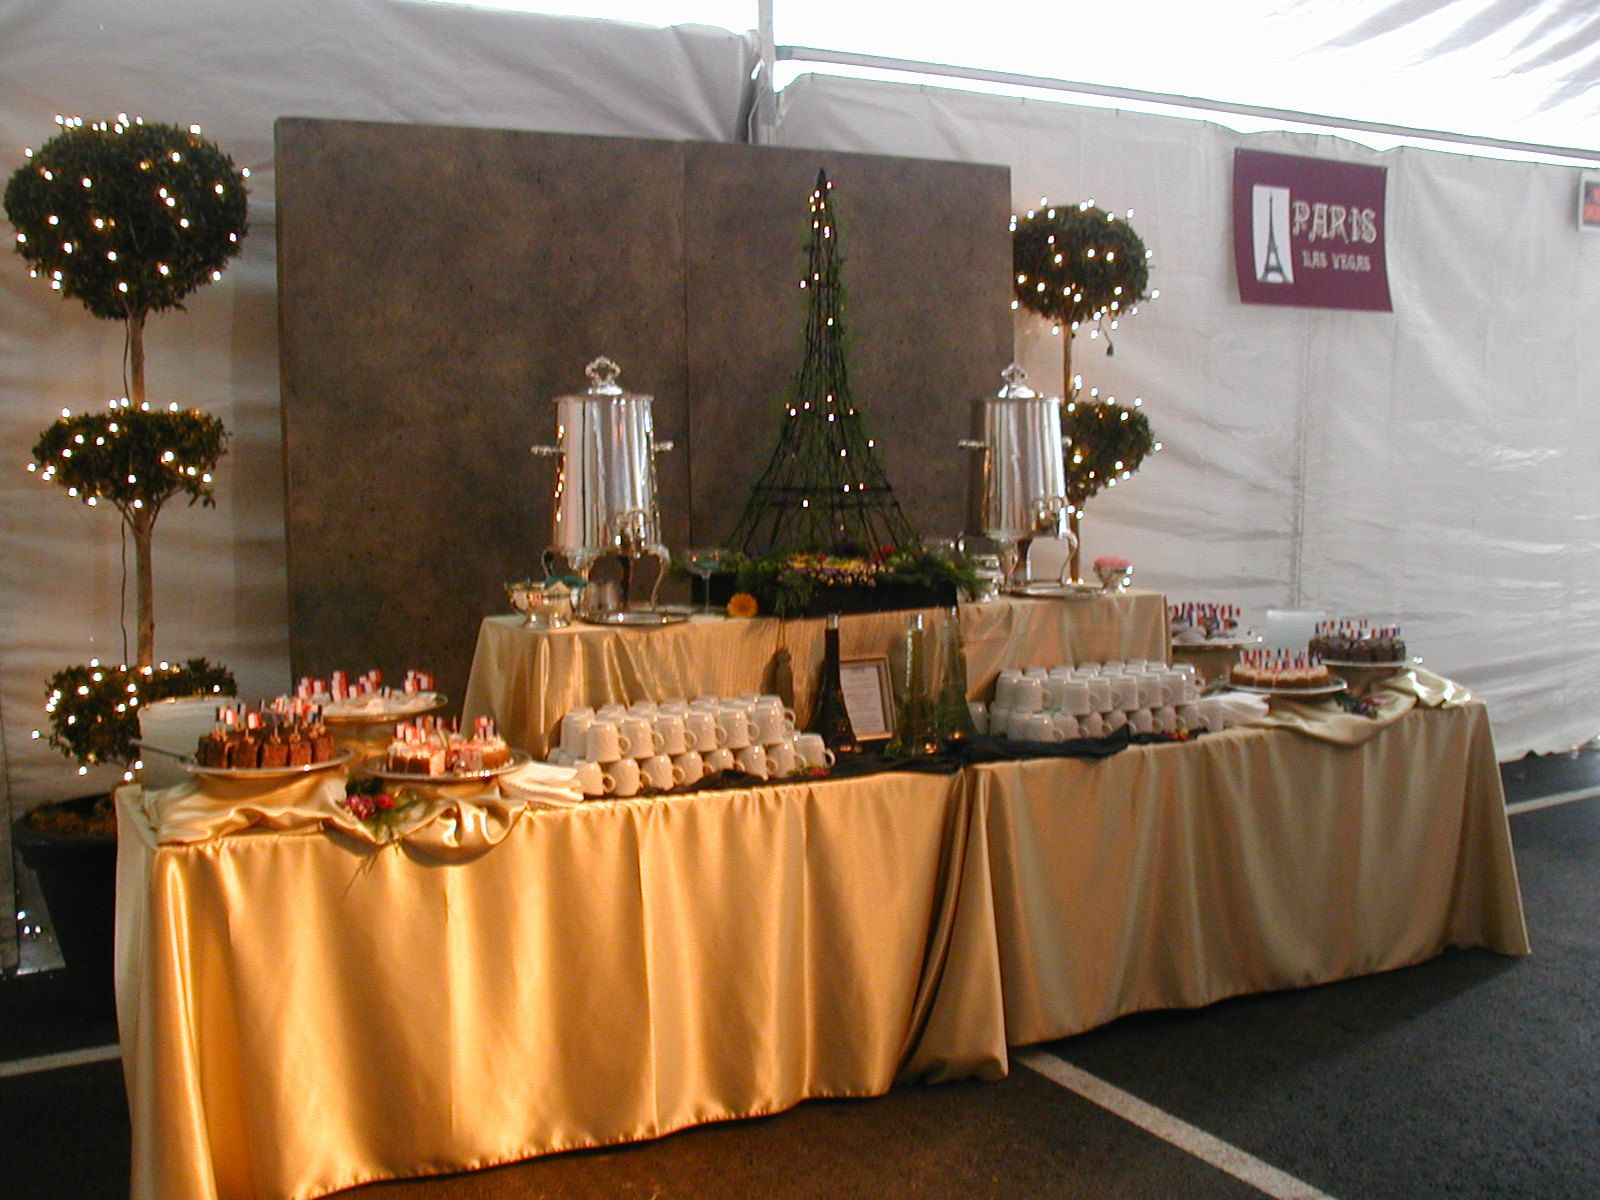 Paris dessert and coffee station stations not buffets